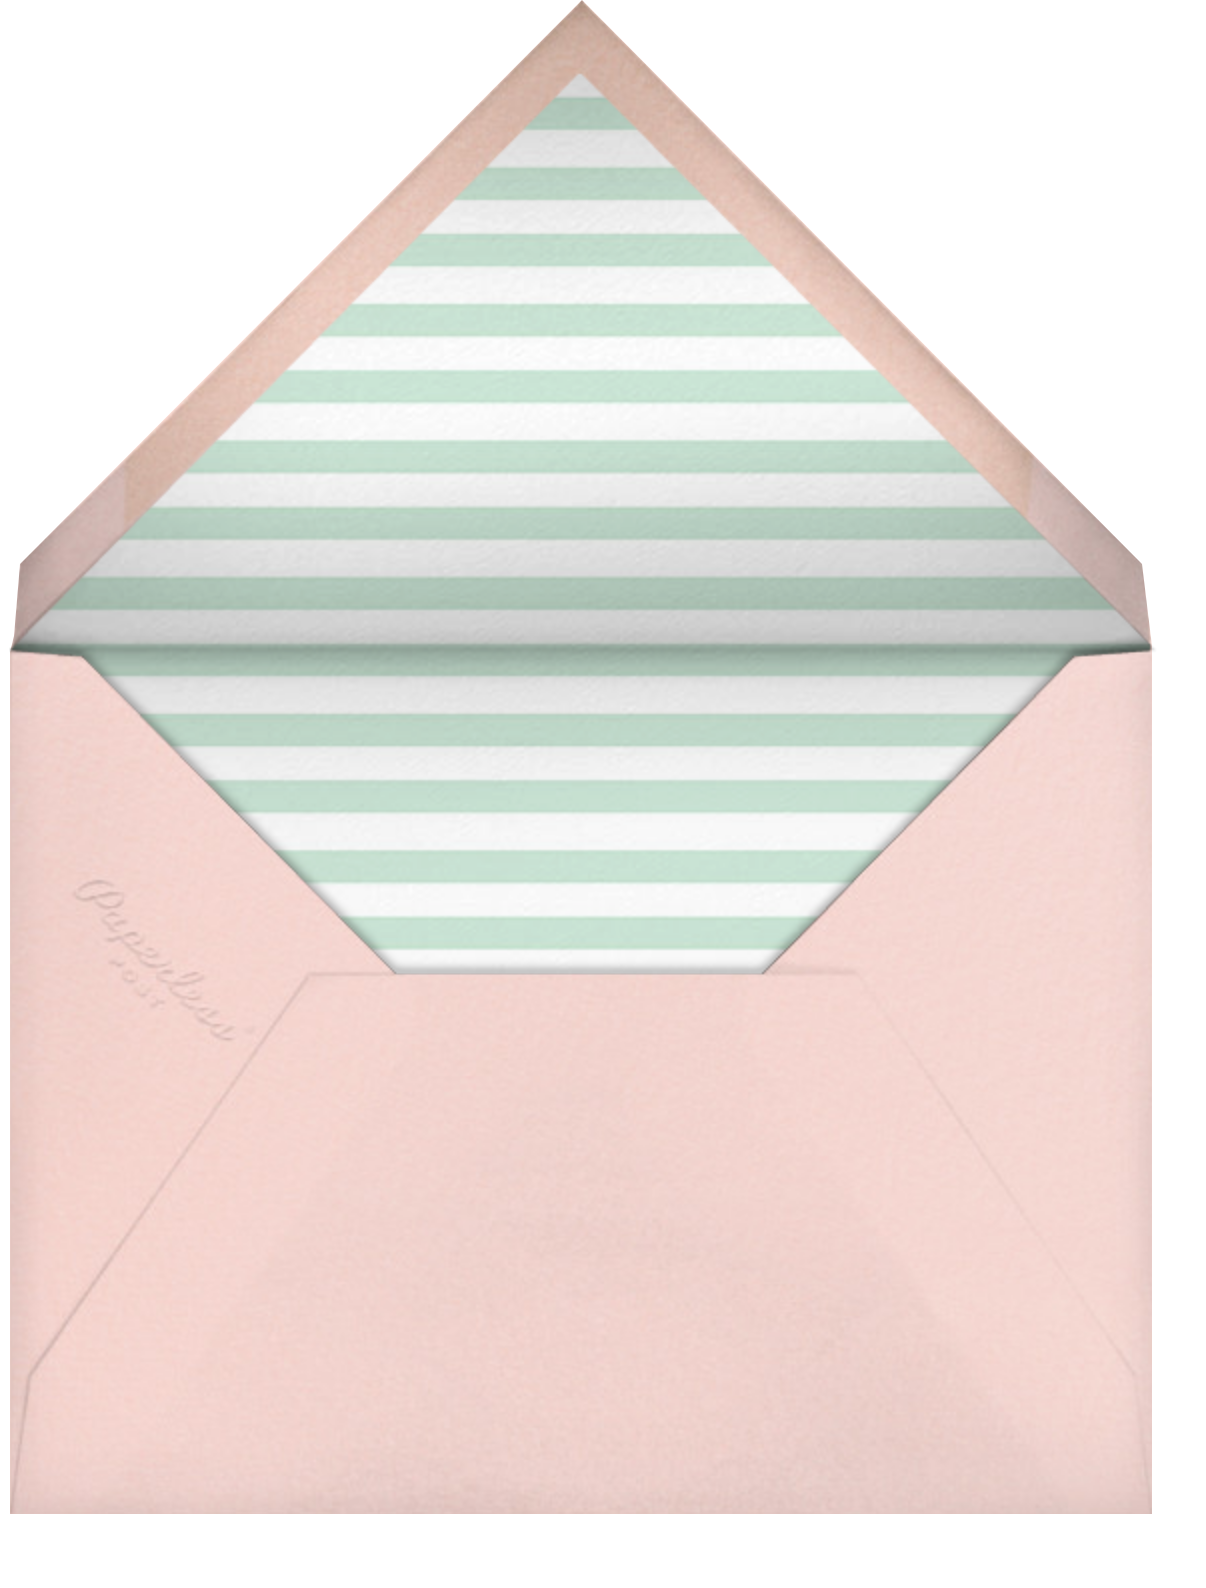 Quint - Mint/Rose Gold - Paperless Post - Kids' birthday - envelope back